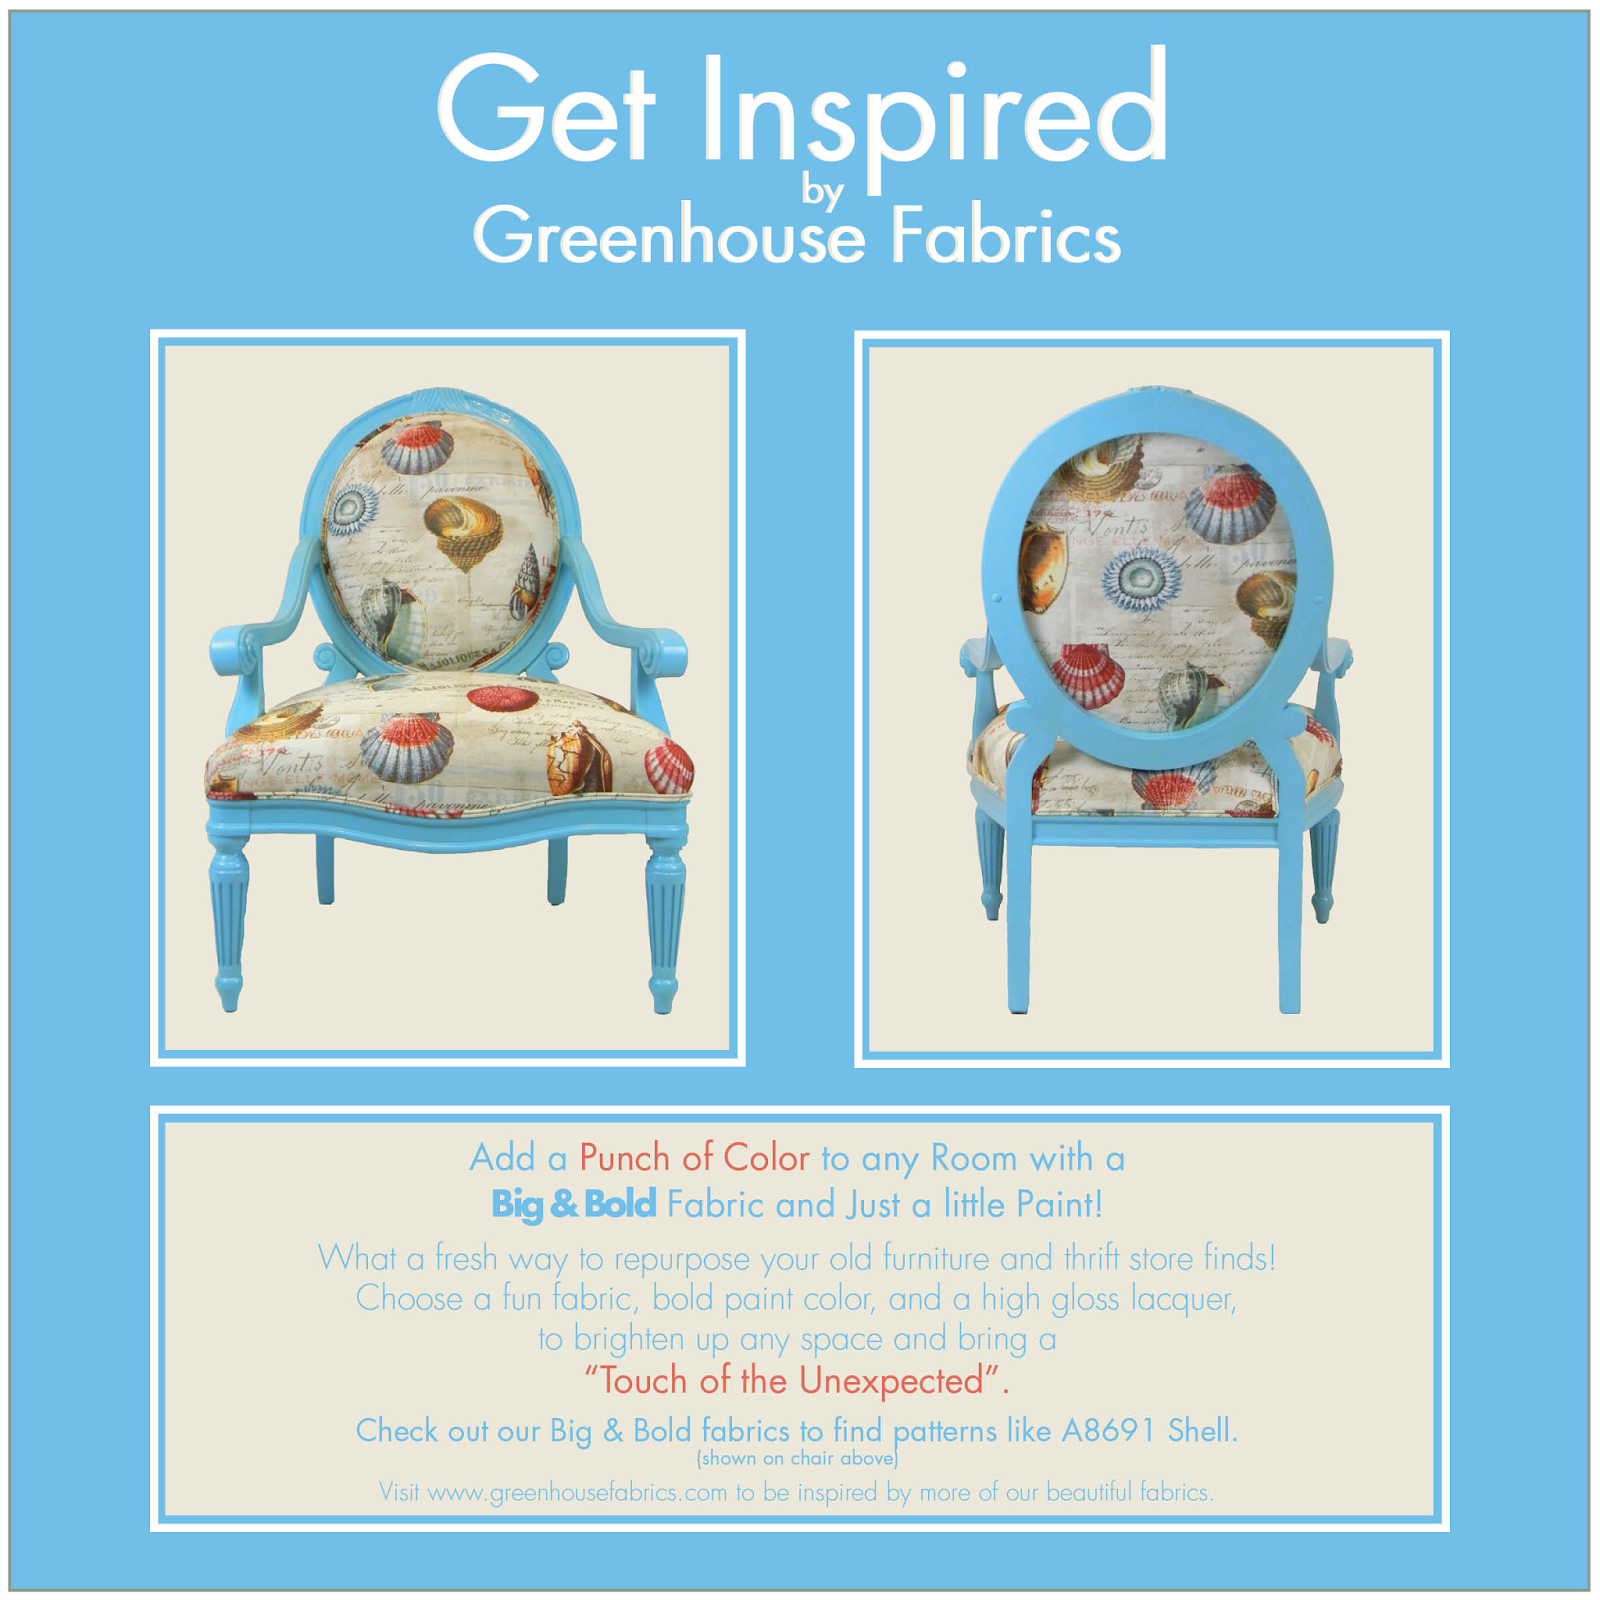 https://www.greenhousefabrics.com/fabrics/new/true